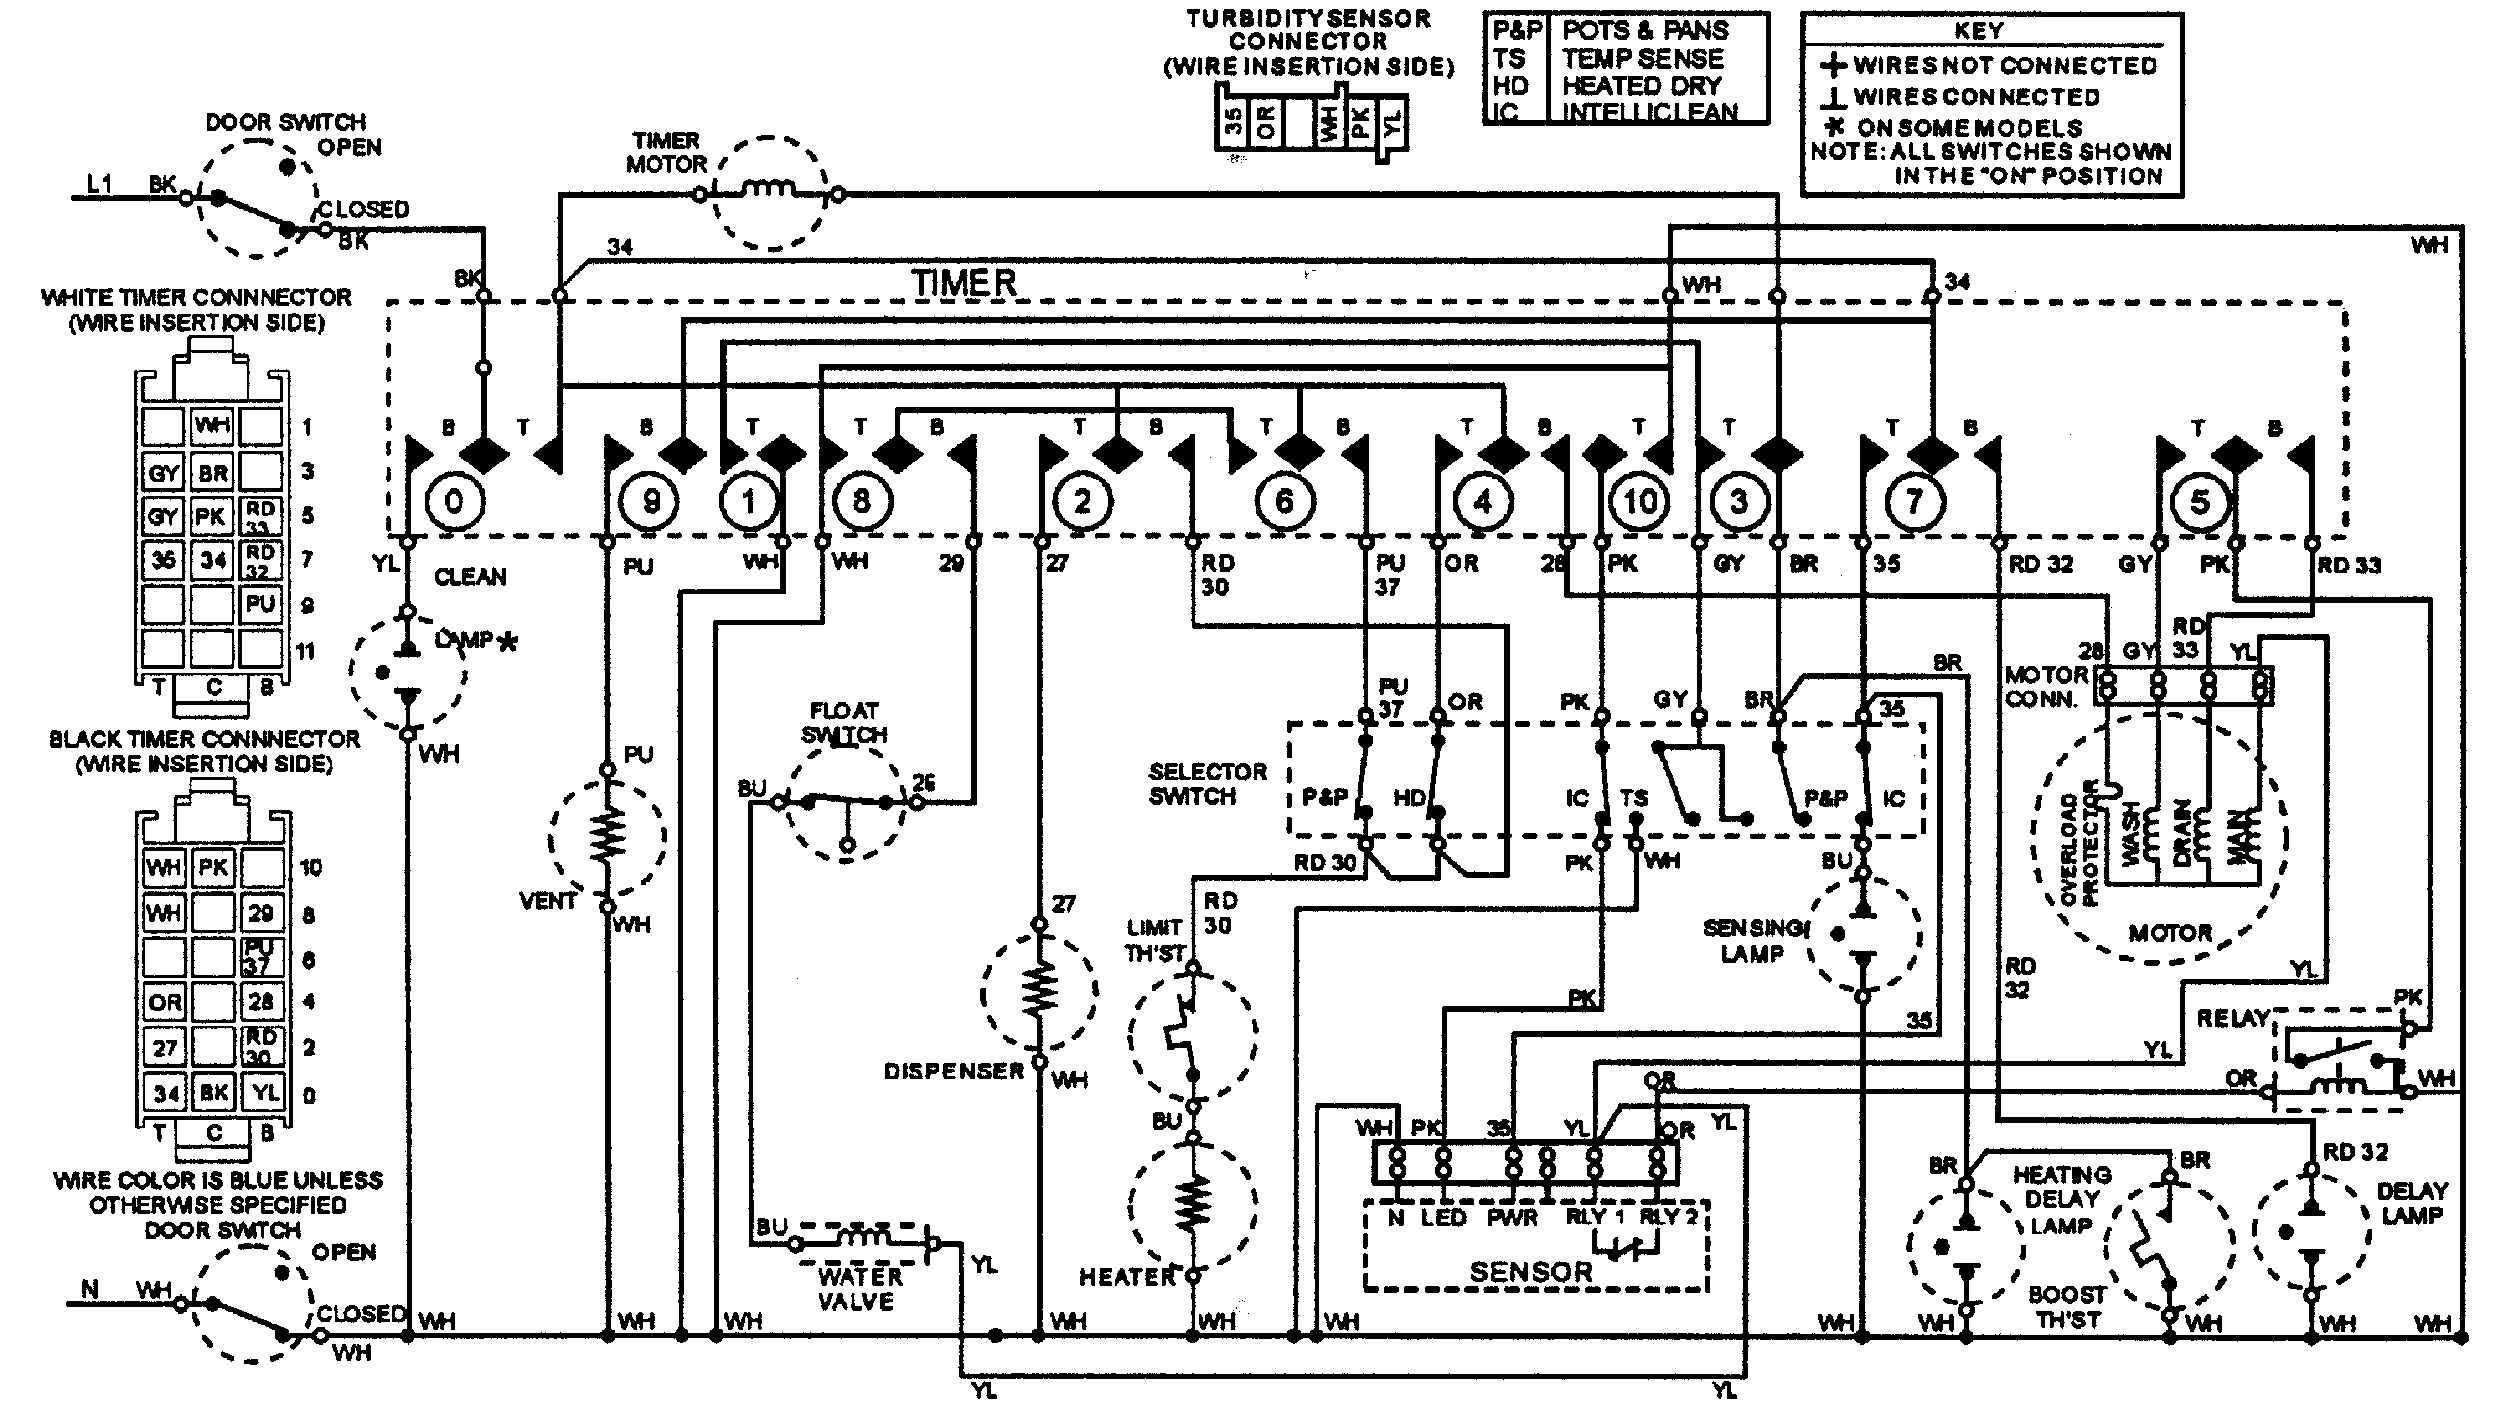 Whirlpool Wiring Schematic Archive Of Automotive Diagram Dryer Lg5551xtwo Oven Just Data Rh Ag Skiphire Co Uk